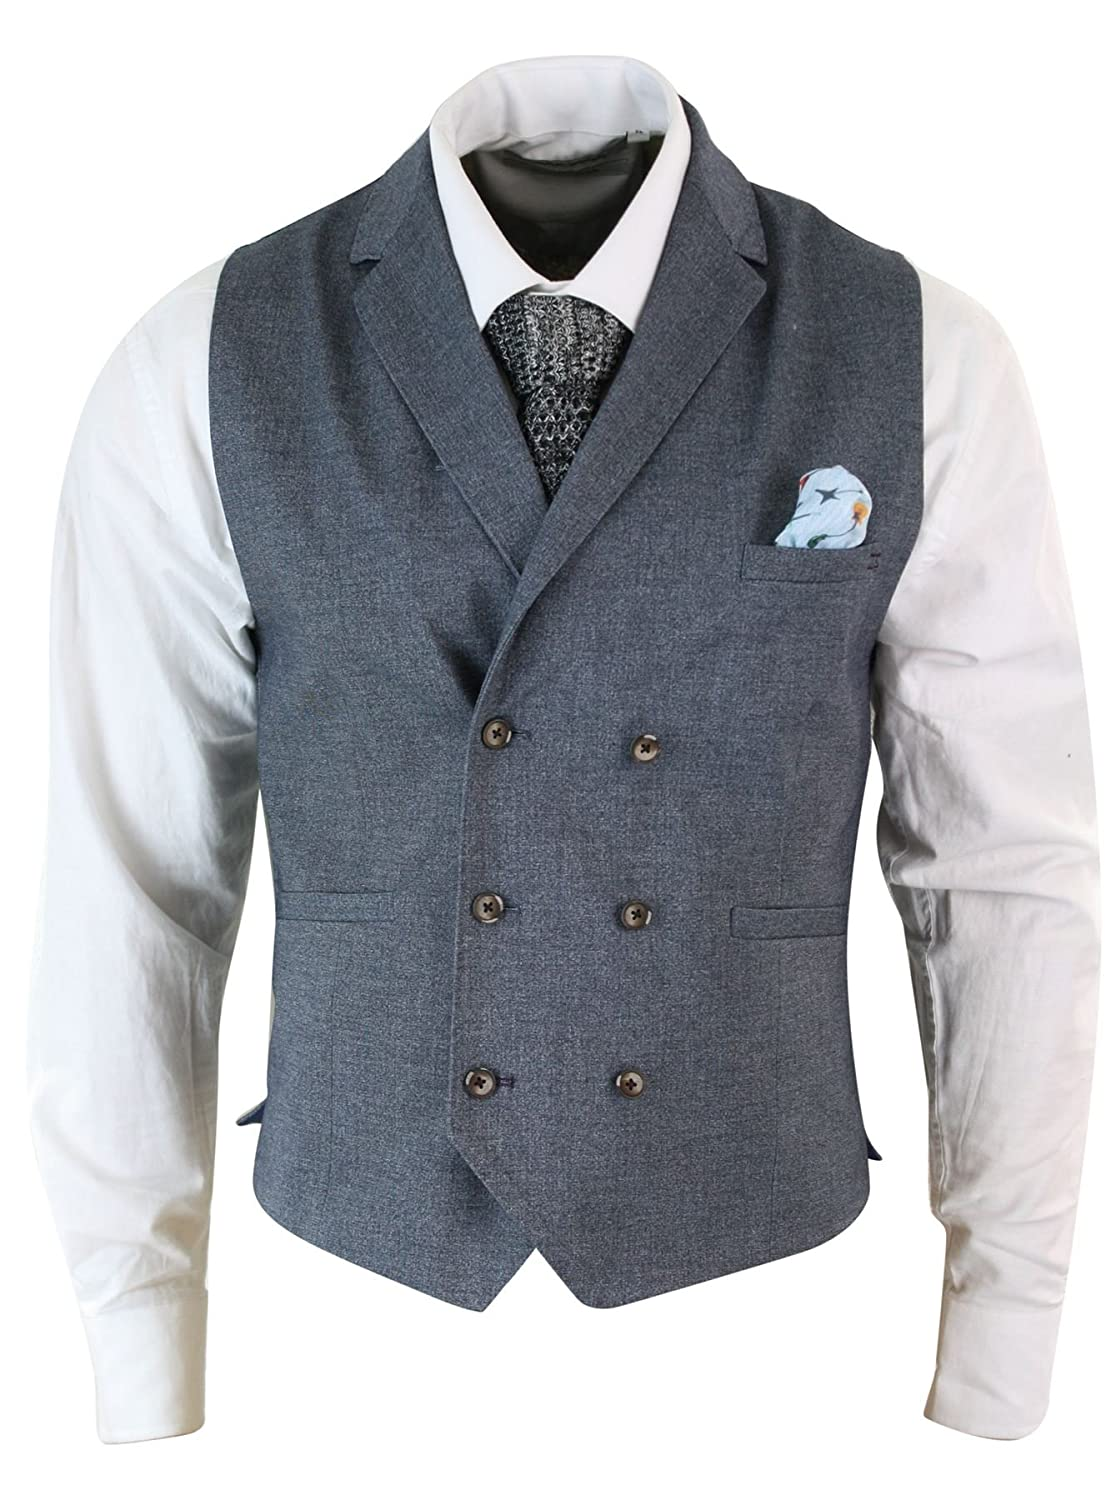 1900s Edwardian Men's Suits and Coats Mens Vintage Peaky Blinders Double Breasted Waistcoat Tweed Check Smart Casual £34.99 AT vintagedancer.com